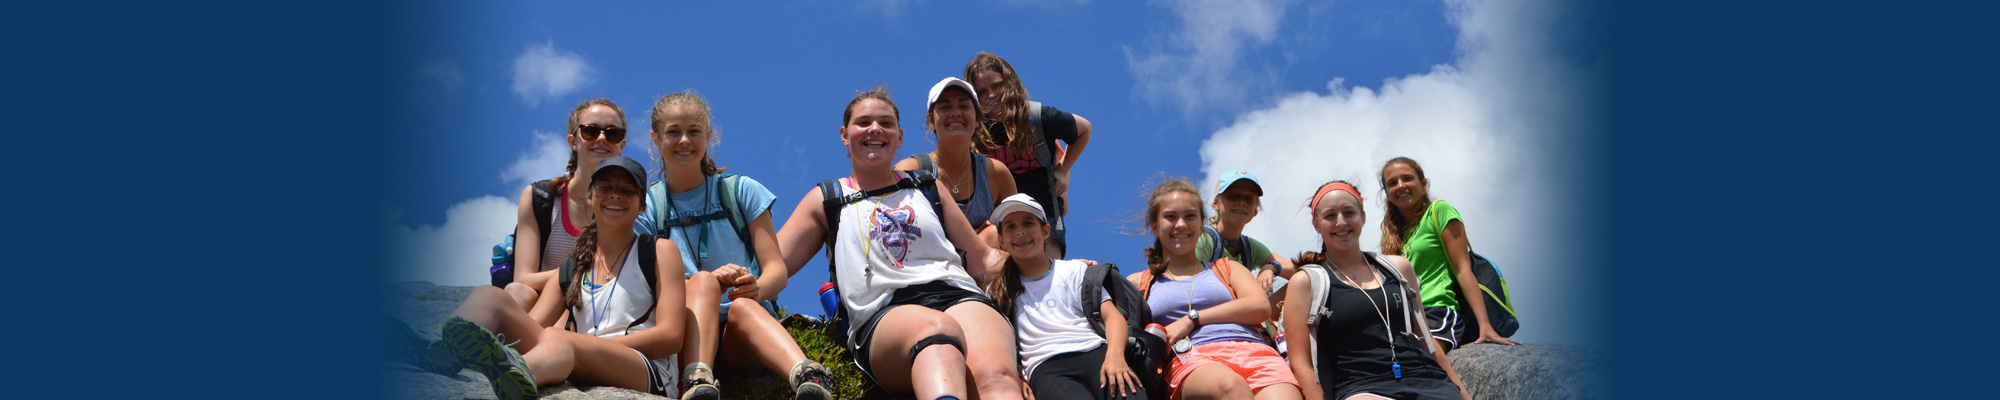 Go Hiking at Sleep Away Summer Camp for Girls Upstate New York